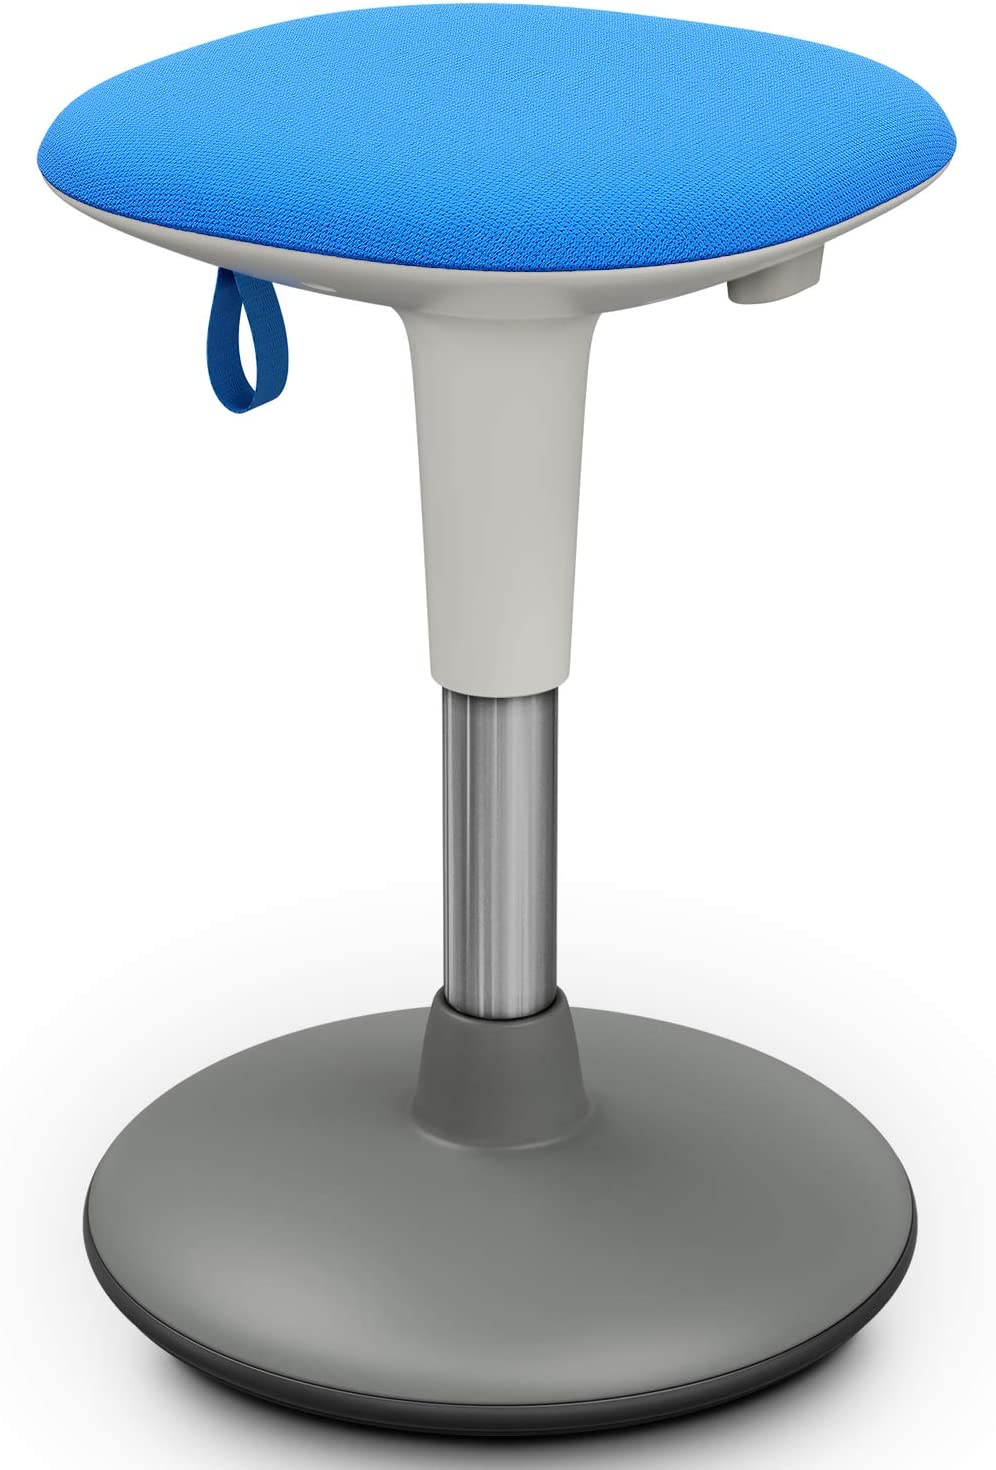 Periwinkle Active Wobble Seating 15-1//2 Inch Seat Height Classroom Select NeoRok Motion Stool